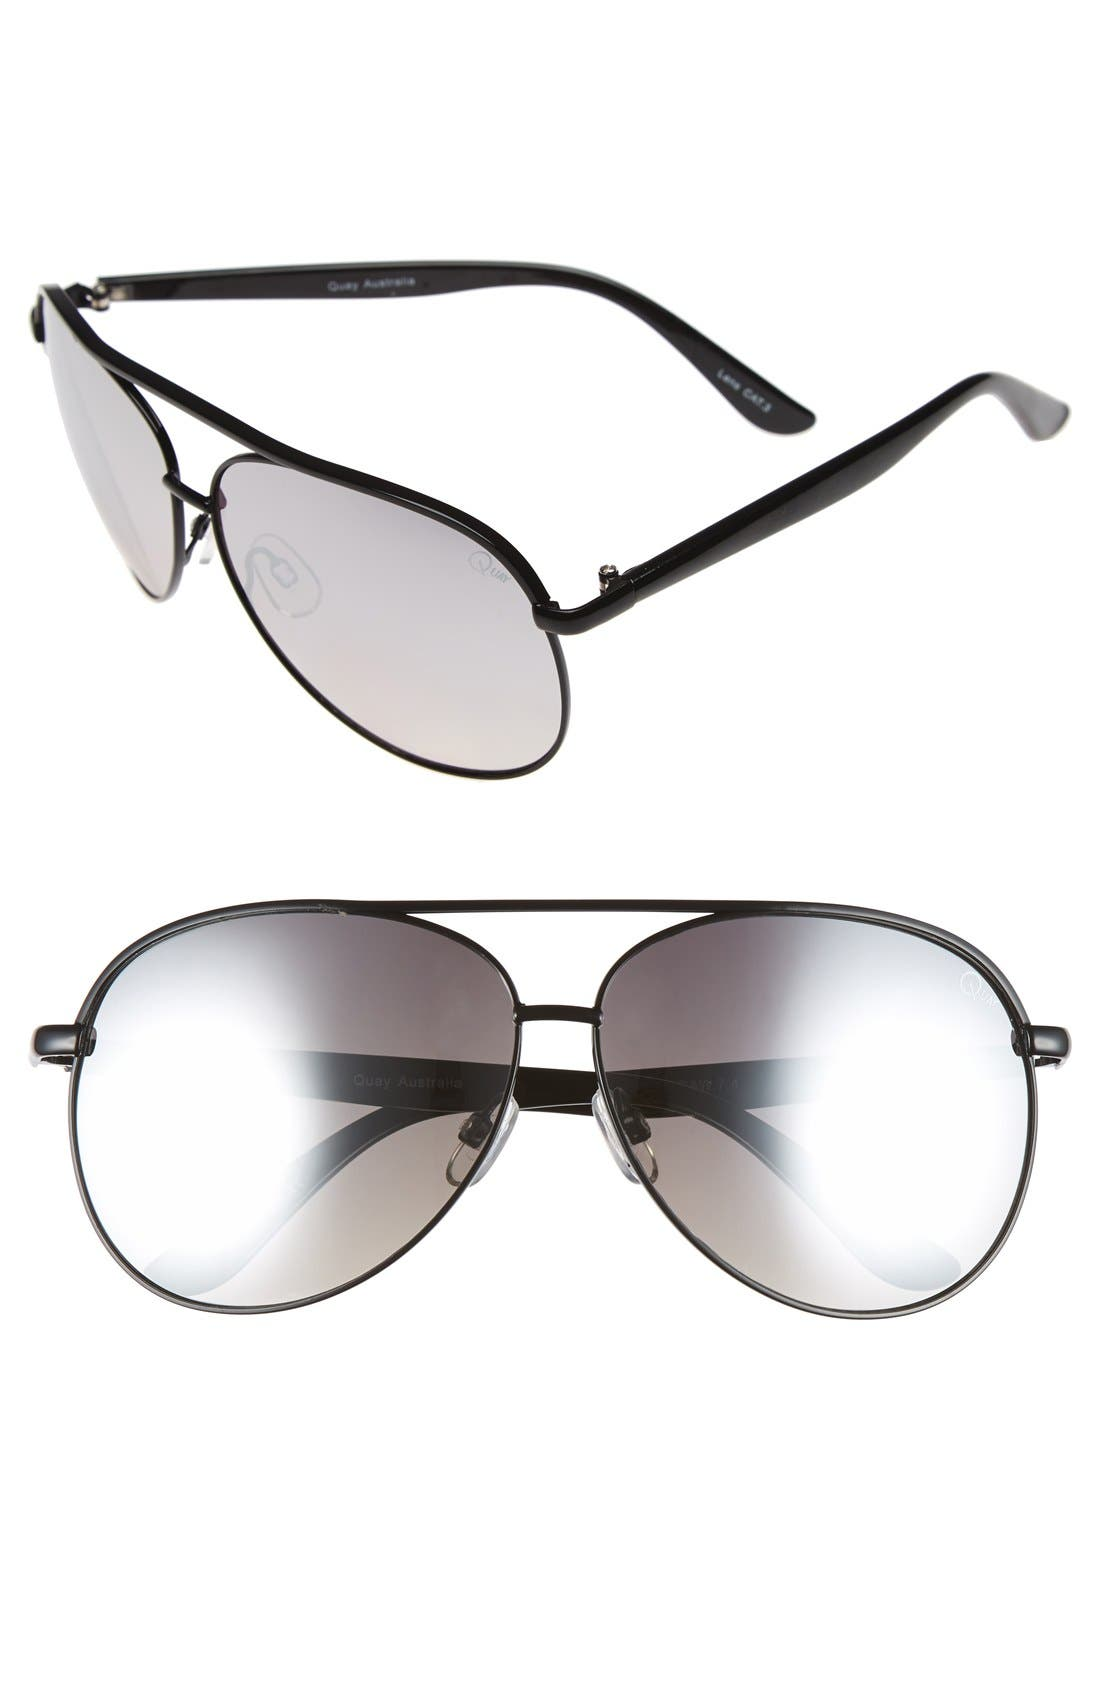 Main Image - Quay Australia 'Macaw' 65mm Aviator Sunglasses